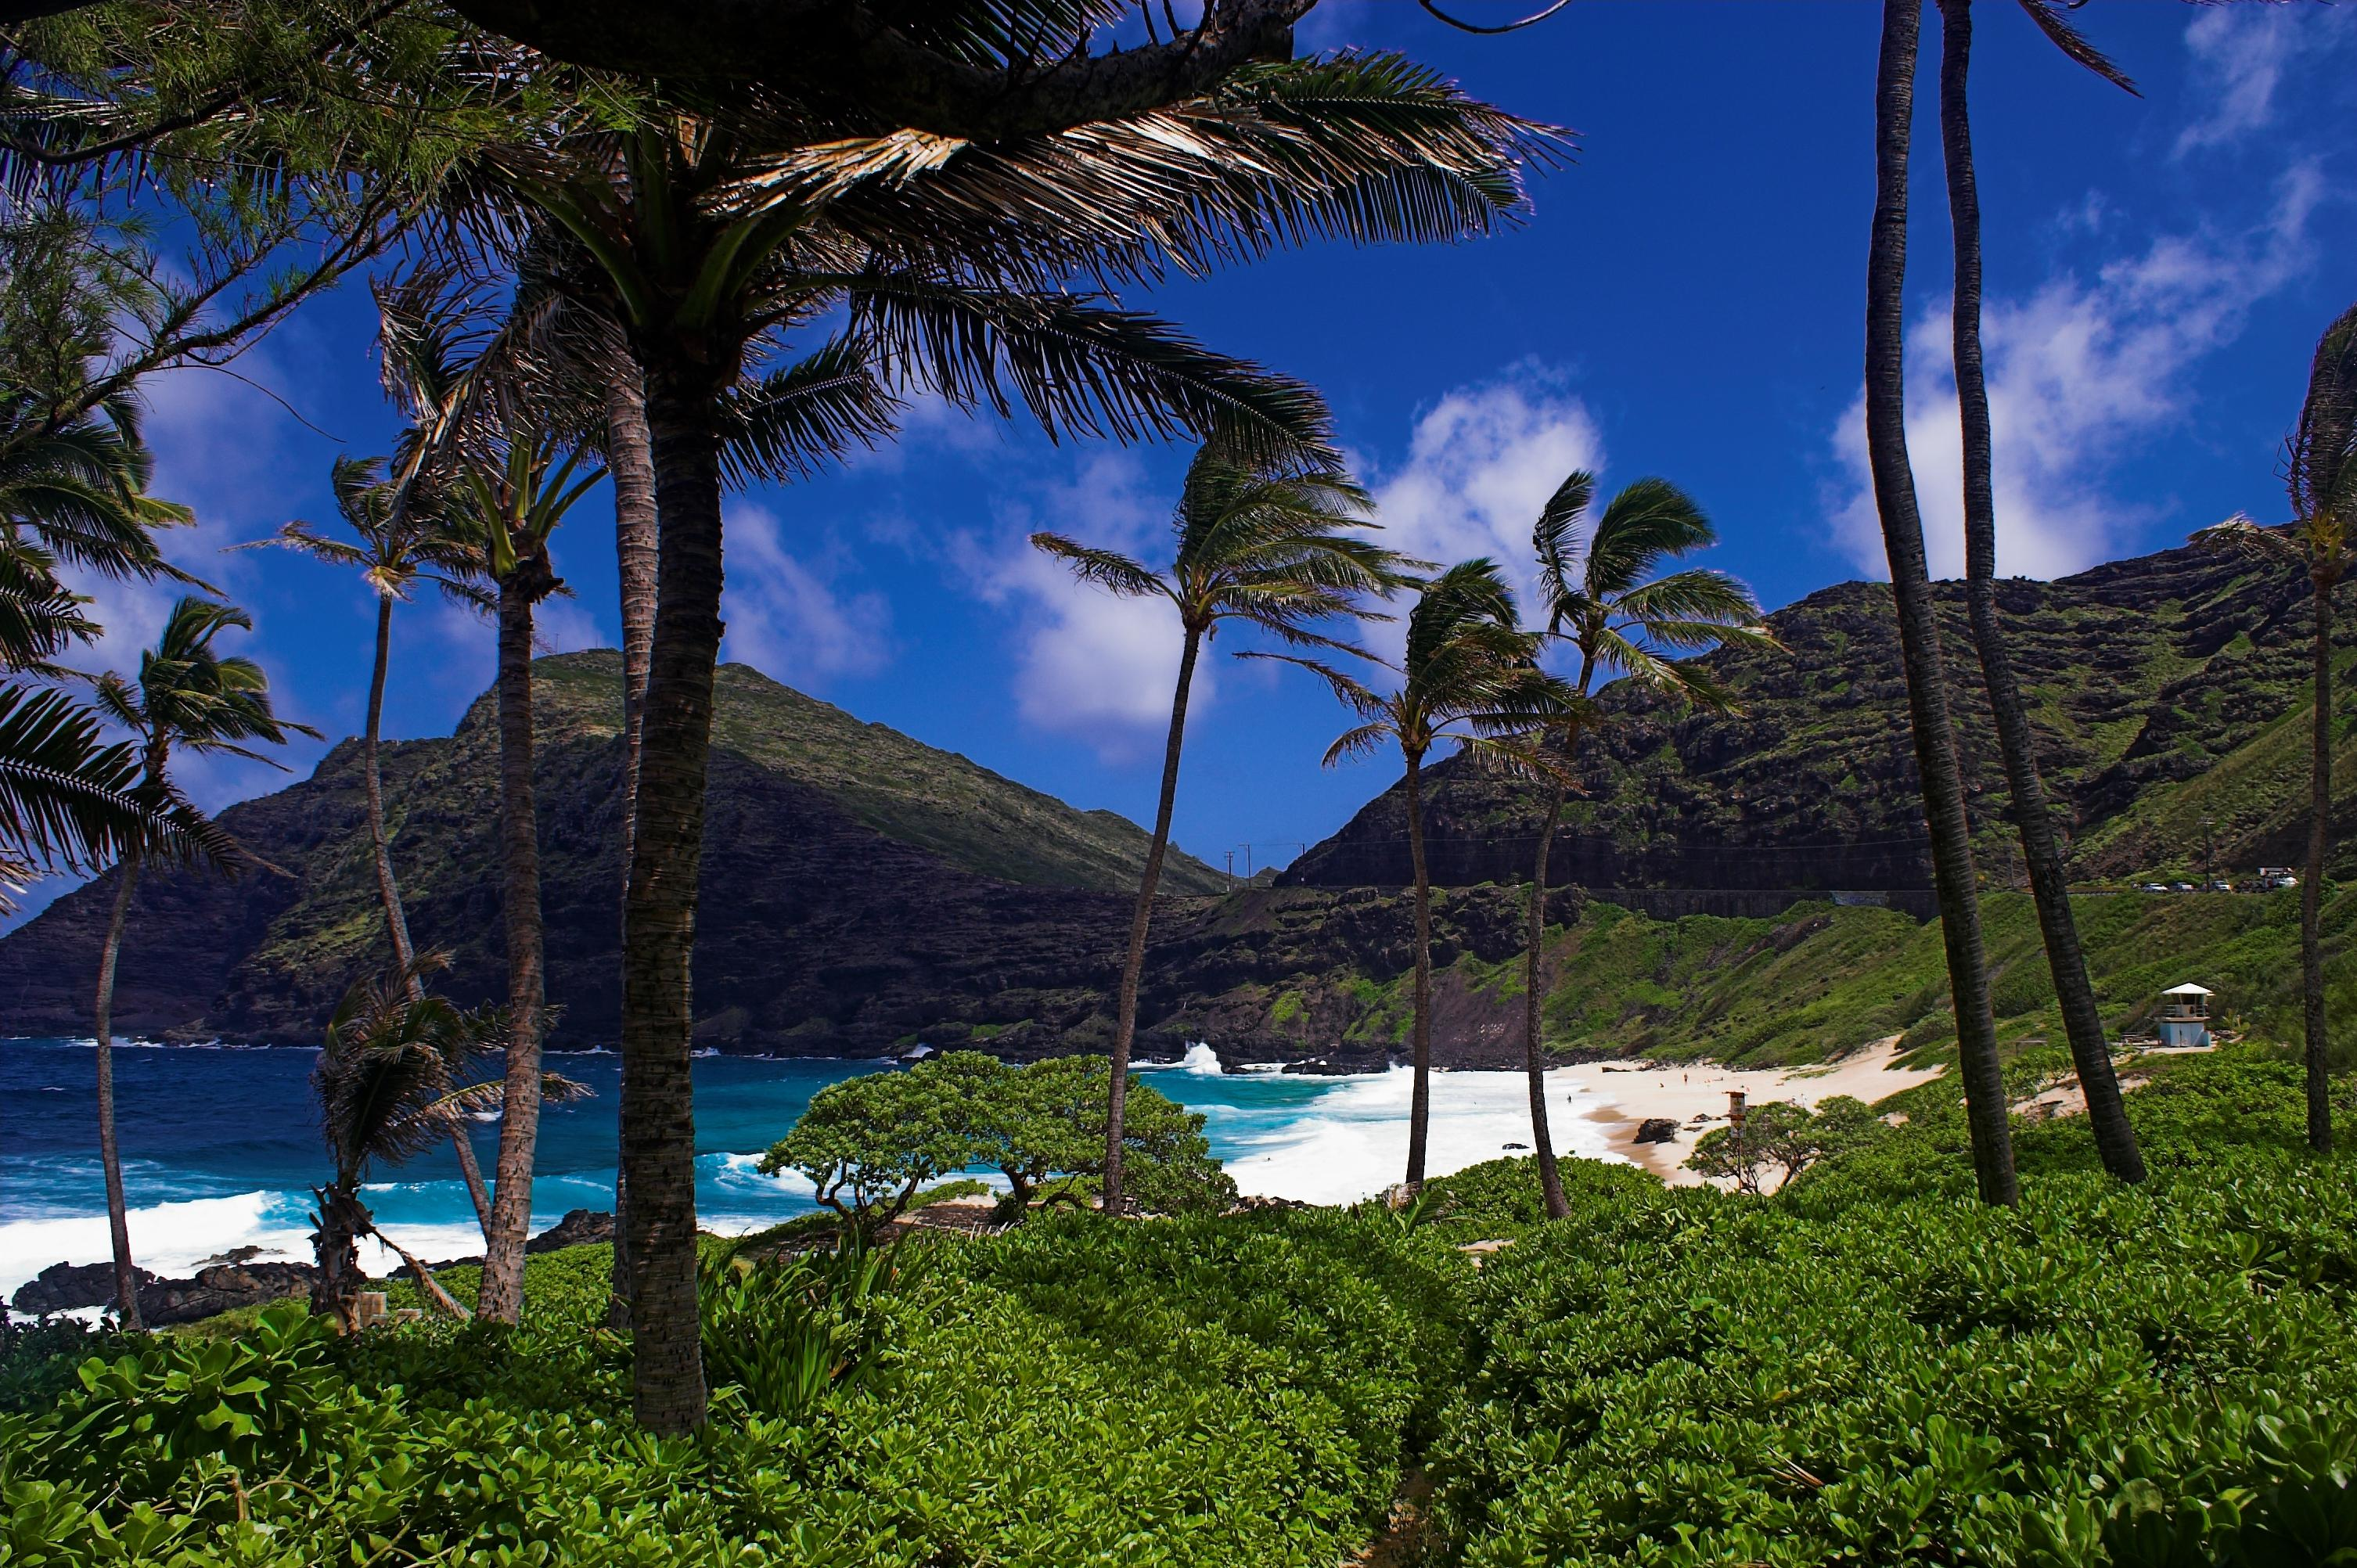 """Oahu Windward (East) Shore<br/>Photo <a href=""""//creativecommons.org/licences/by-nc-nd/3.0/"""" class=""""cc-small"""" target=""""_blank""""><img typeof=""""foaf:Image"""" class=""""image-style-none"""" src=""""https://i.creativecommons.org/l/by-nc-nd/3.0/80x15.png"""" width=""""80px"""" height=""""15px"""" alt=""""Creative Commons Licence"""" /></a> <a href=""""https://www.flickr.com/photos/72451959@N00/475099572"""">Paul Vladuchick</a>"""